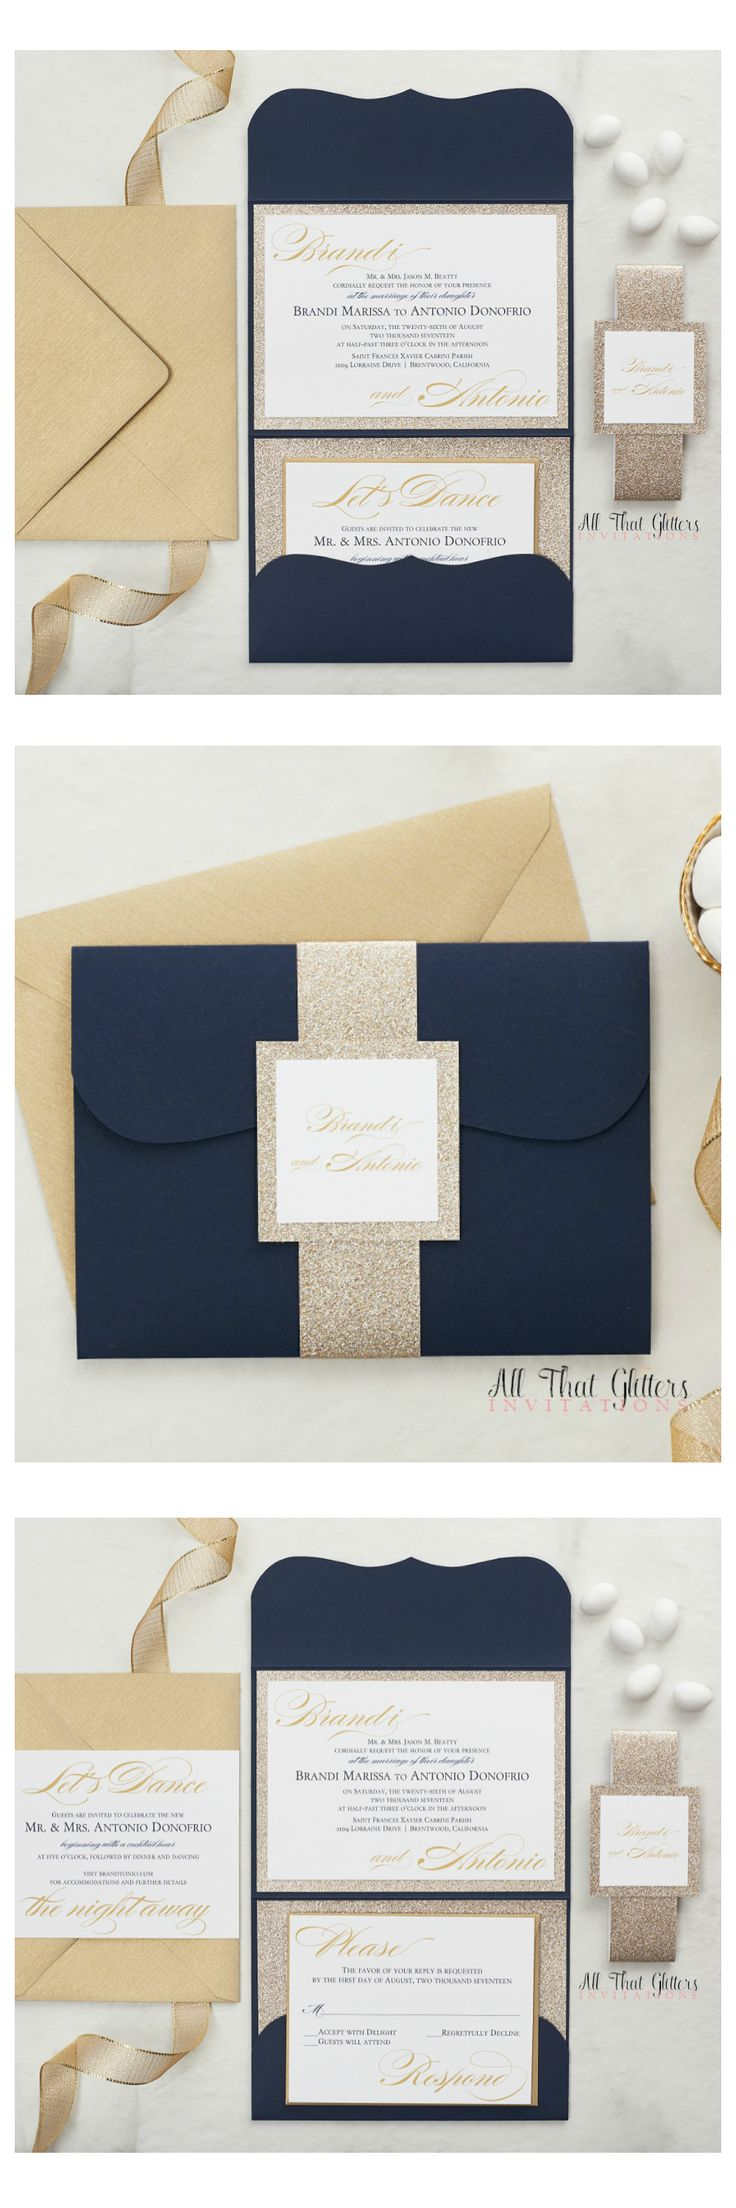 Our Brandi Suite Is The Ultimate Elegant Wedding Invitation! Brandi Can Be  Done In Any